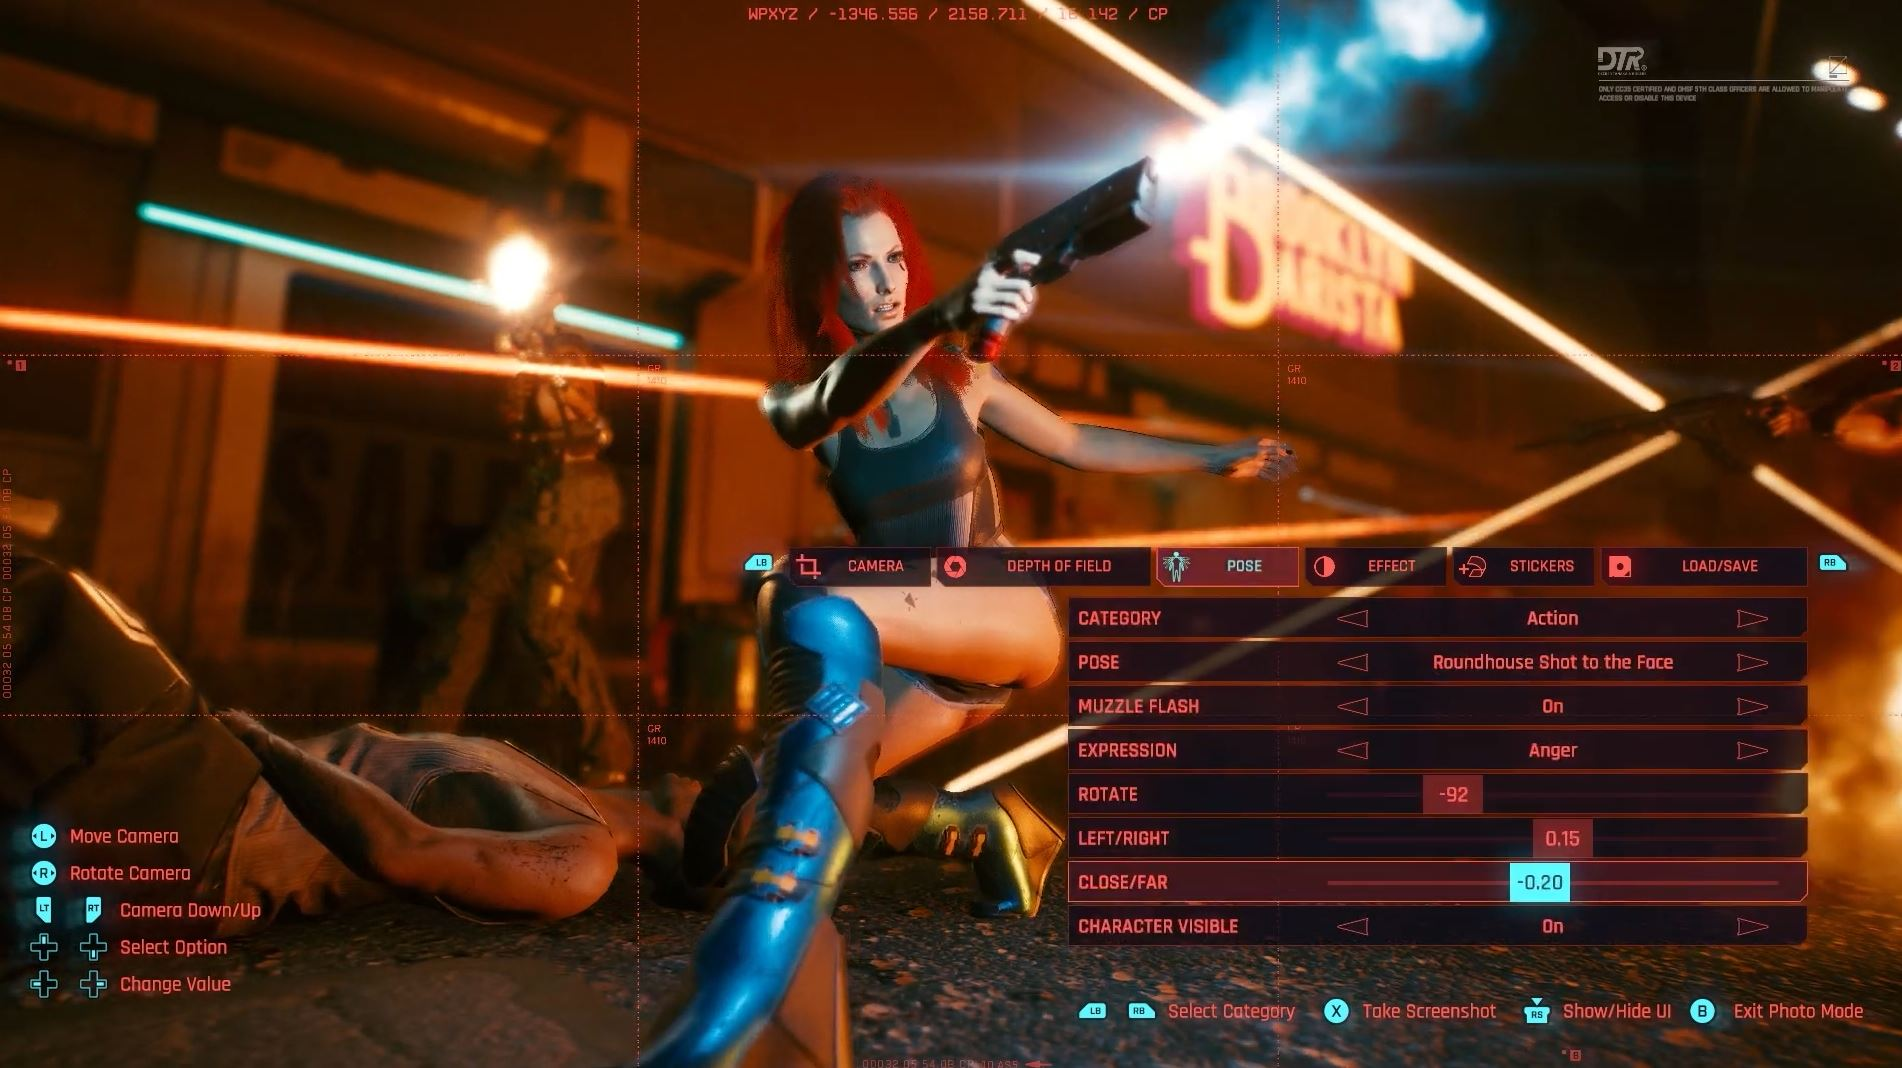 cyberpunk-2077-photo-mode-confirmed-for-launch-new-trailer-released